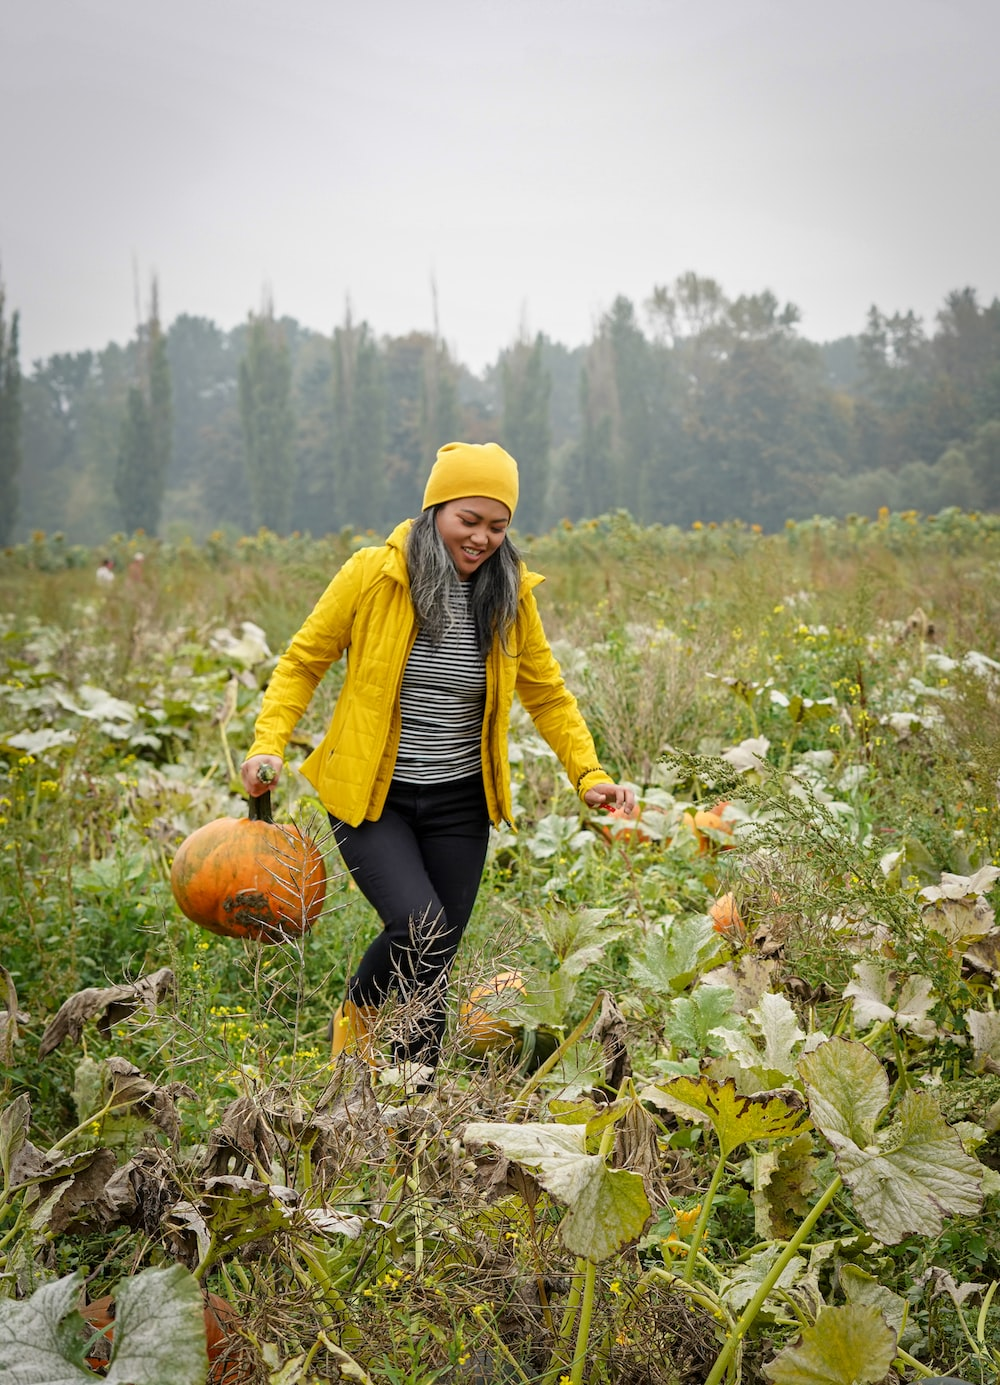 woman in yellow jacket and black pants sitting on pumpkin during daytime